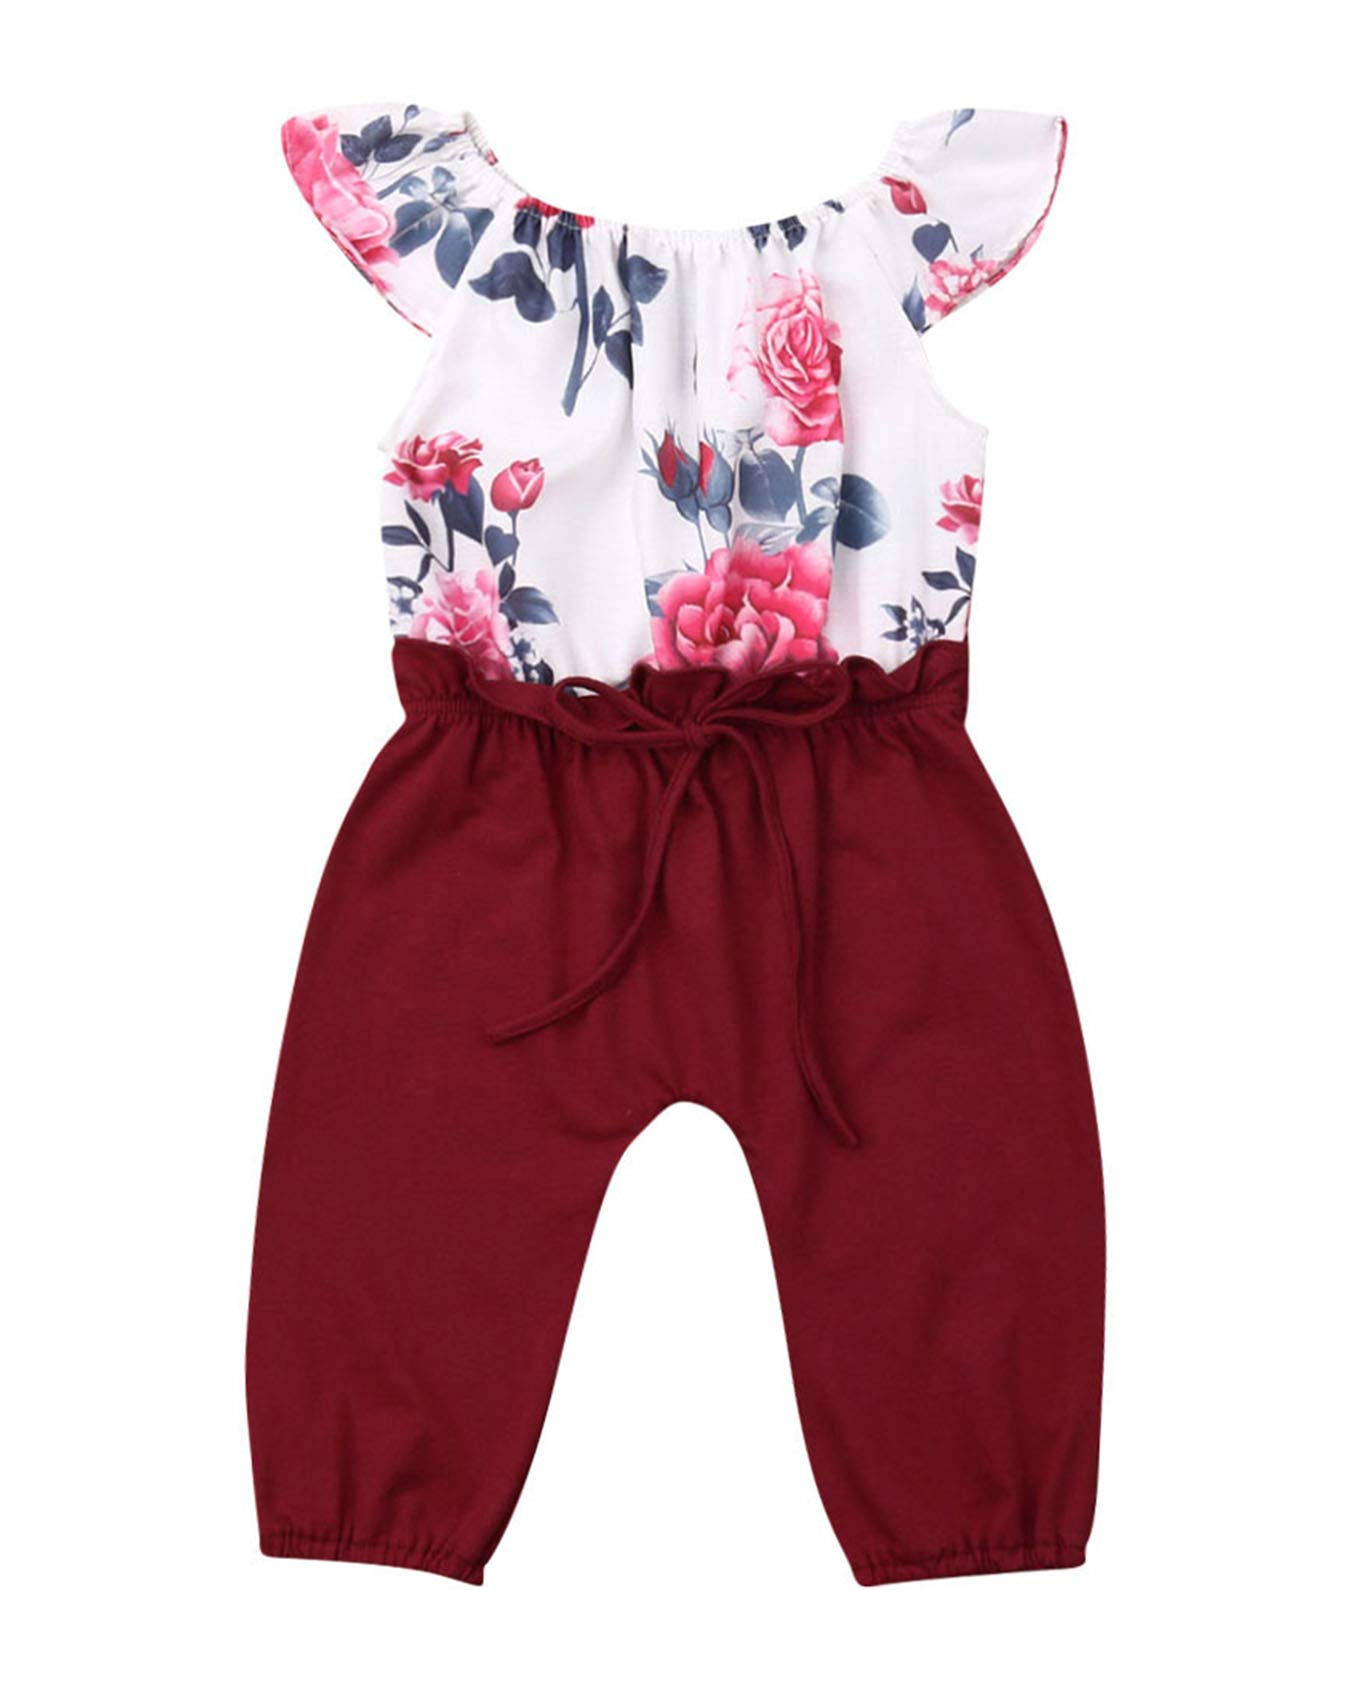 Urkutoba Baby Girl Jumpsuit Toddler Newborn Baby Cotton Linen Romper Solid Color Jumpsuit with Self Tie Straps Overall Outfit